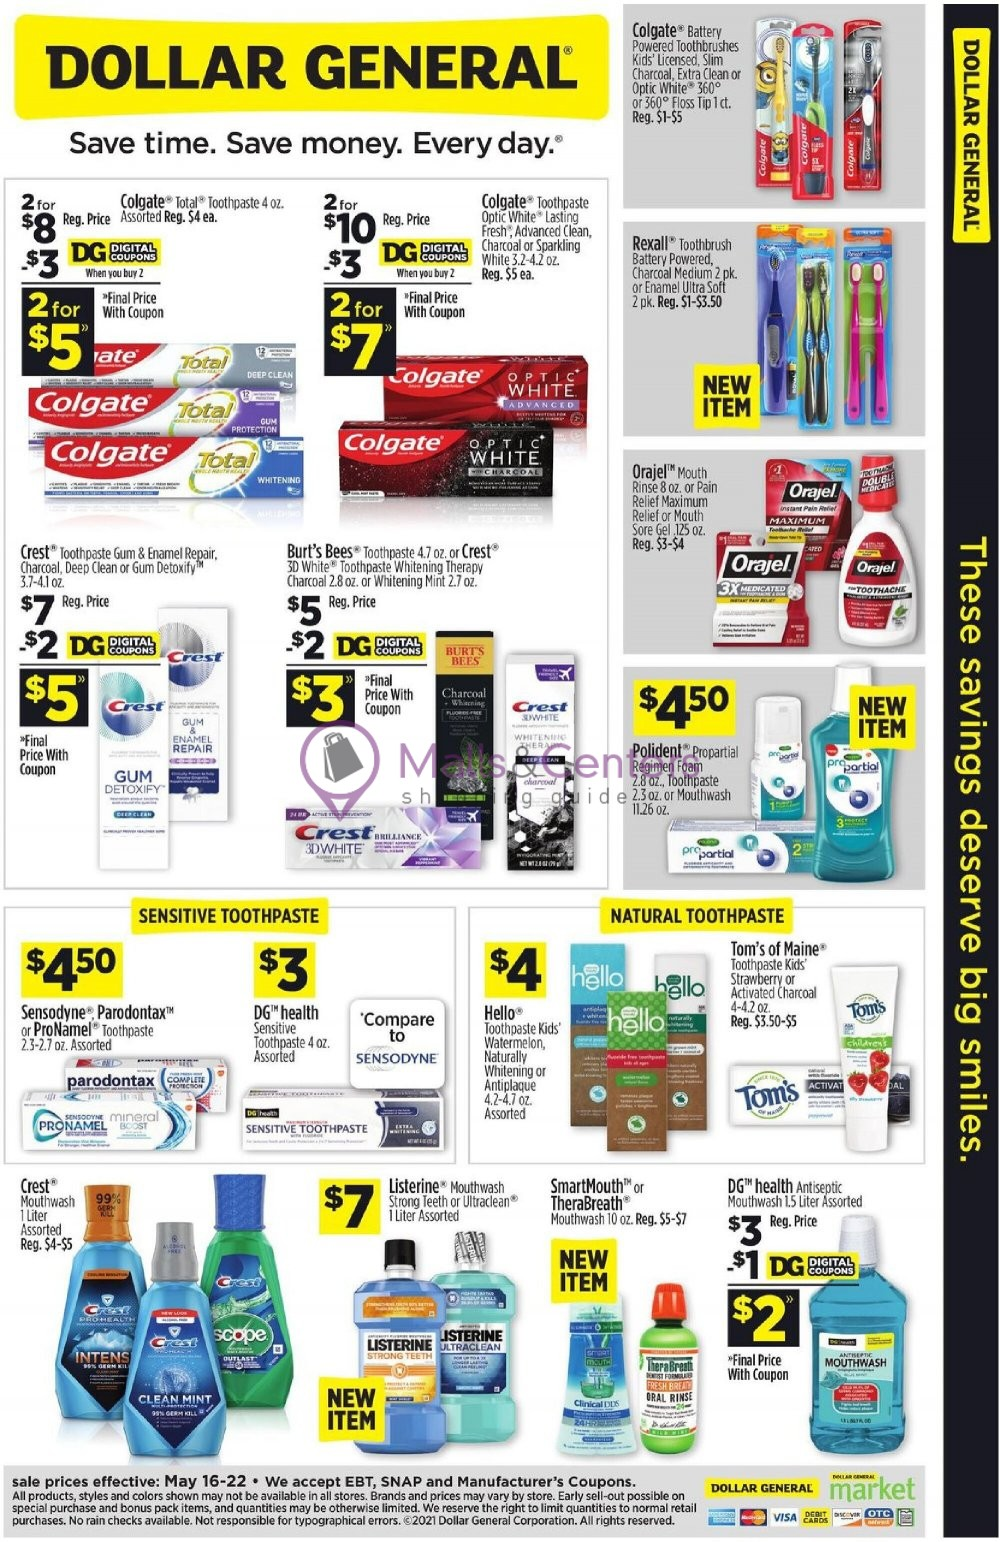 weekly ads Dollar General - page 1 - mallscenters.com